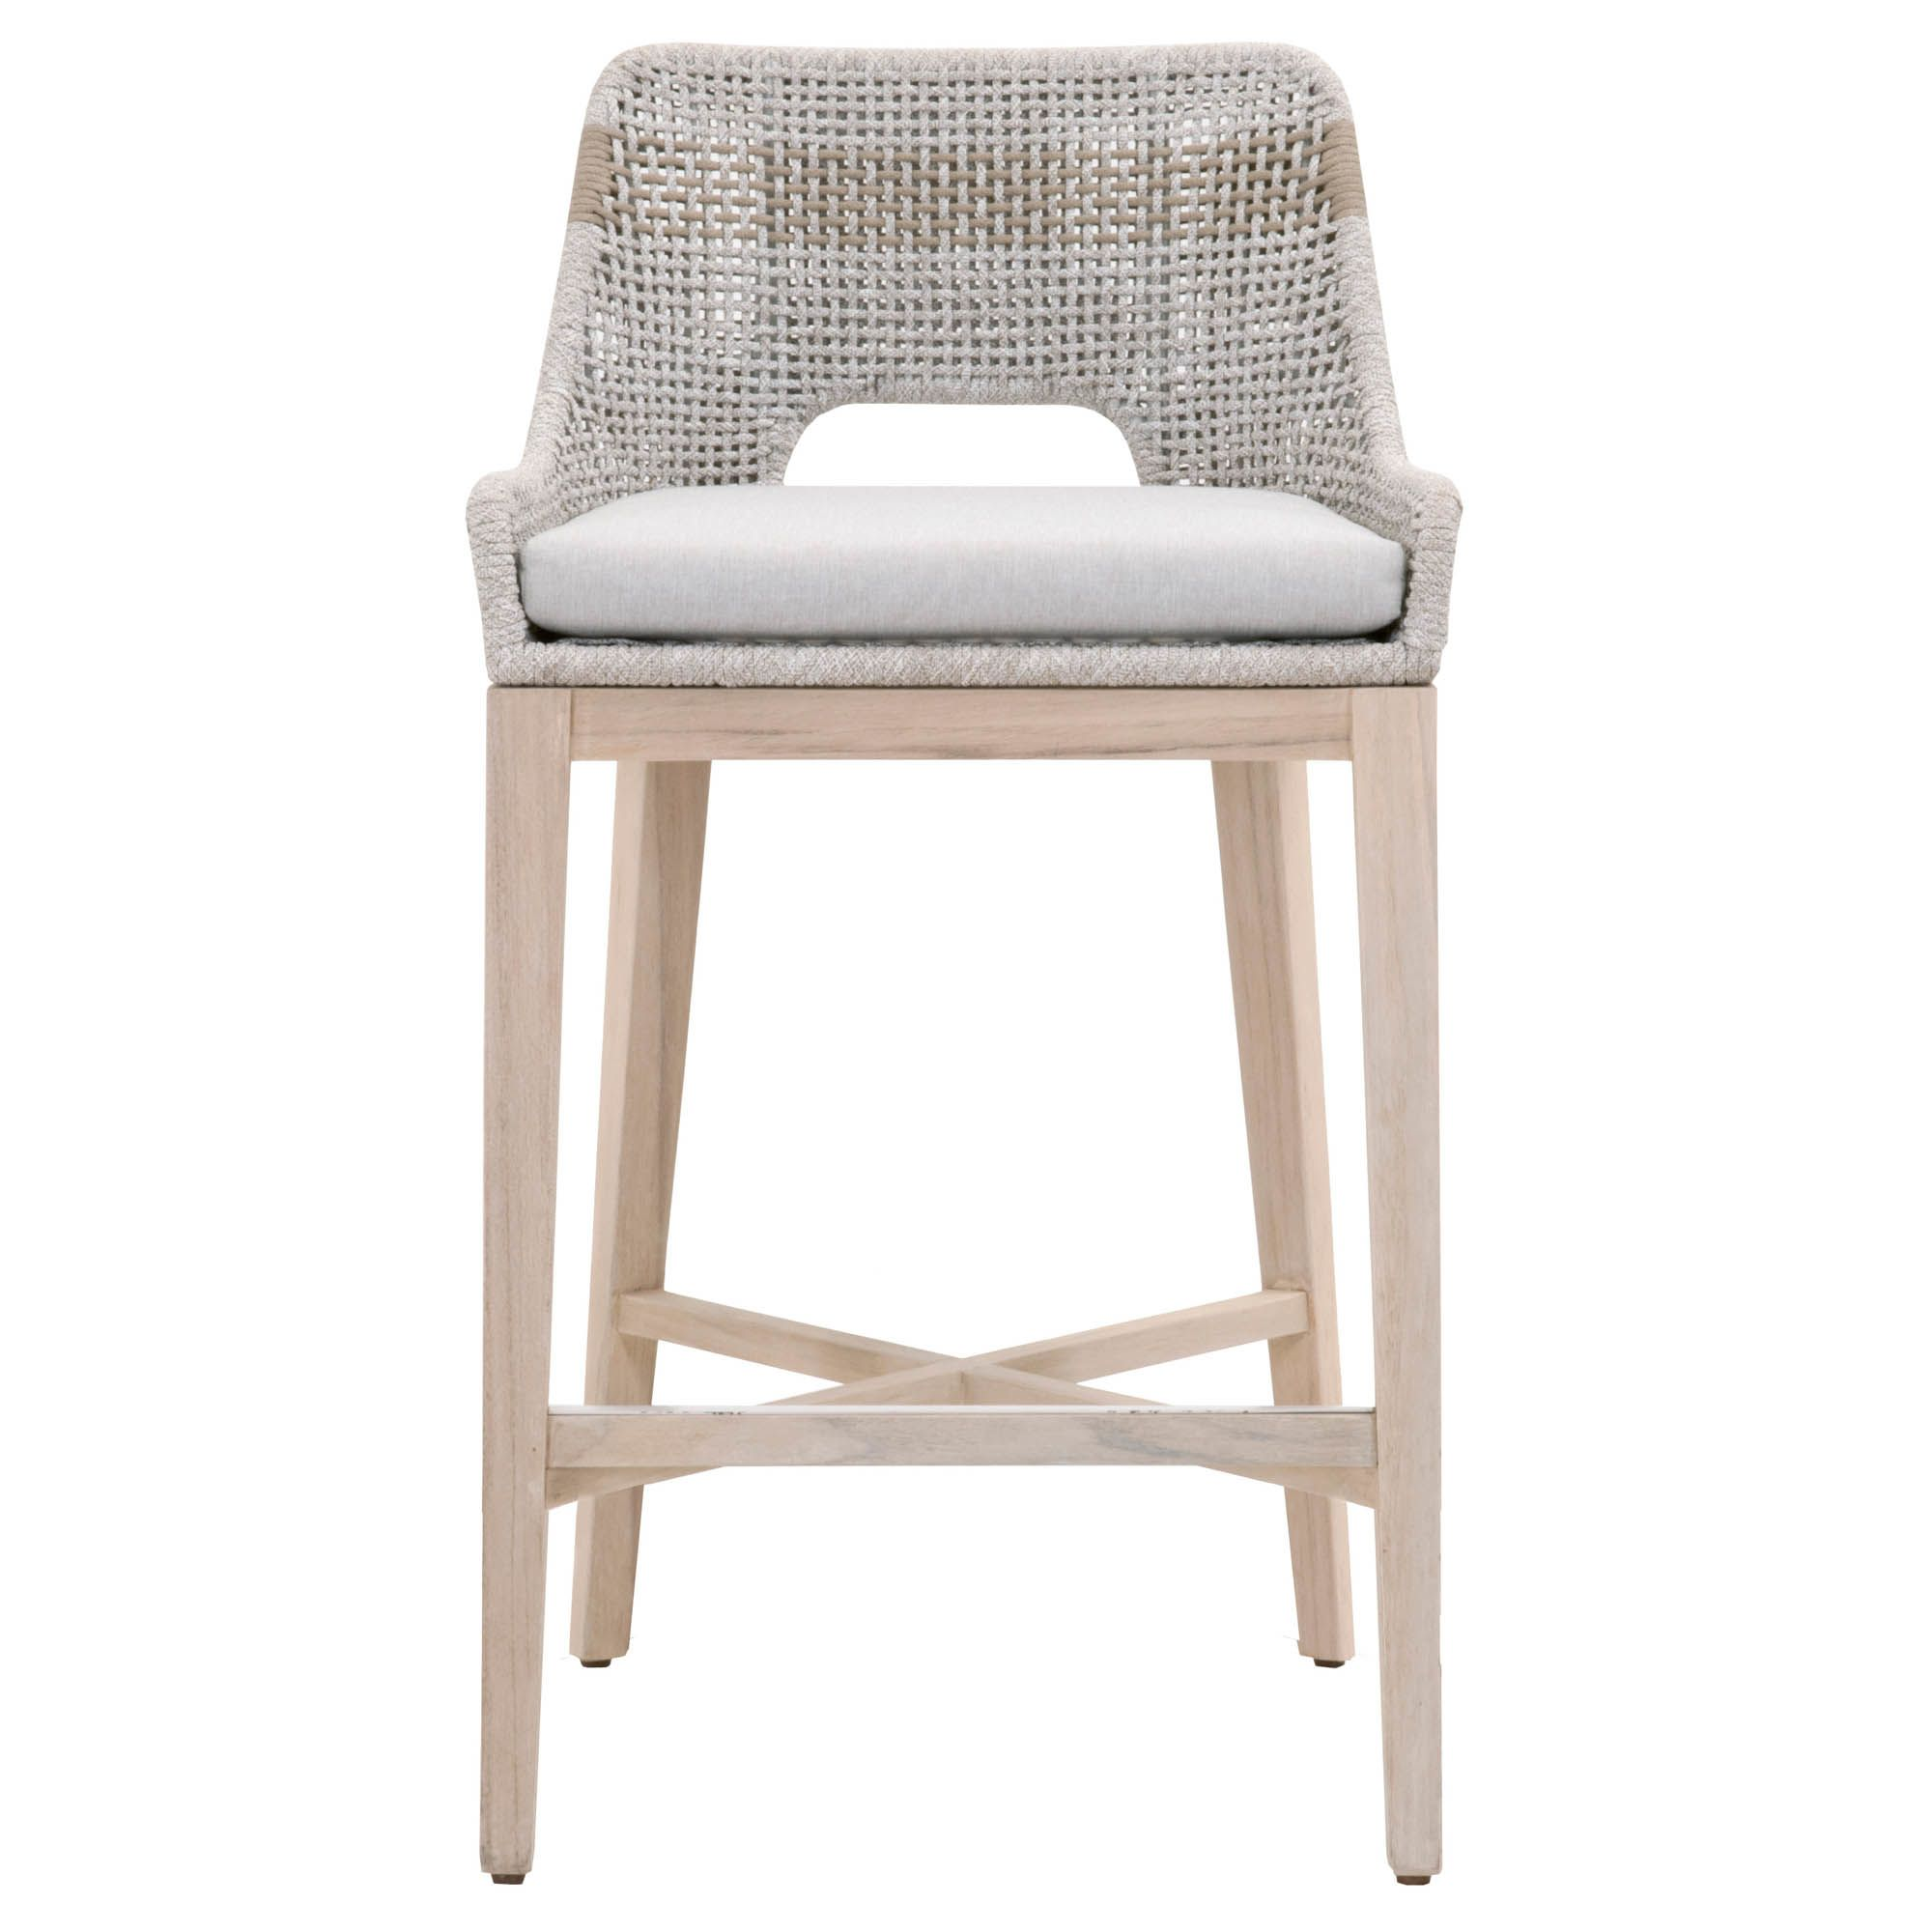 Outdoor Bar Stools With Backs